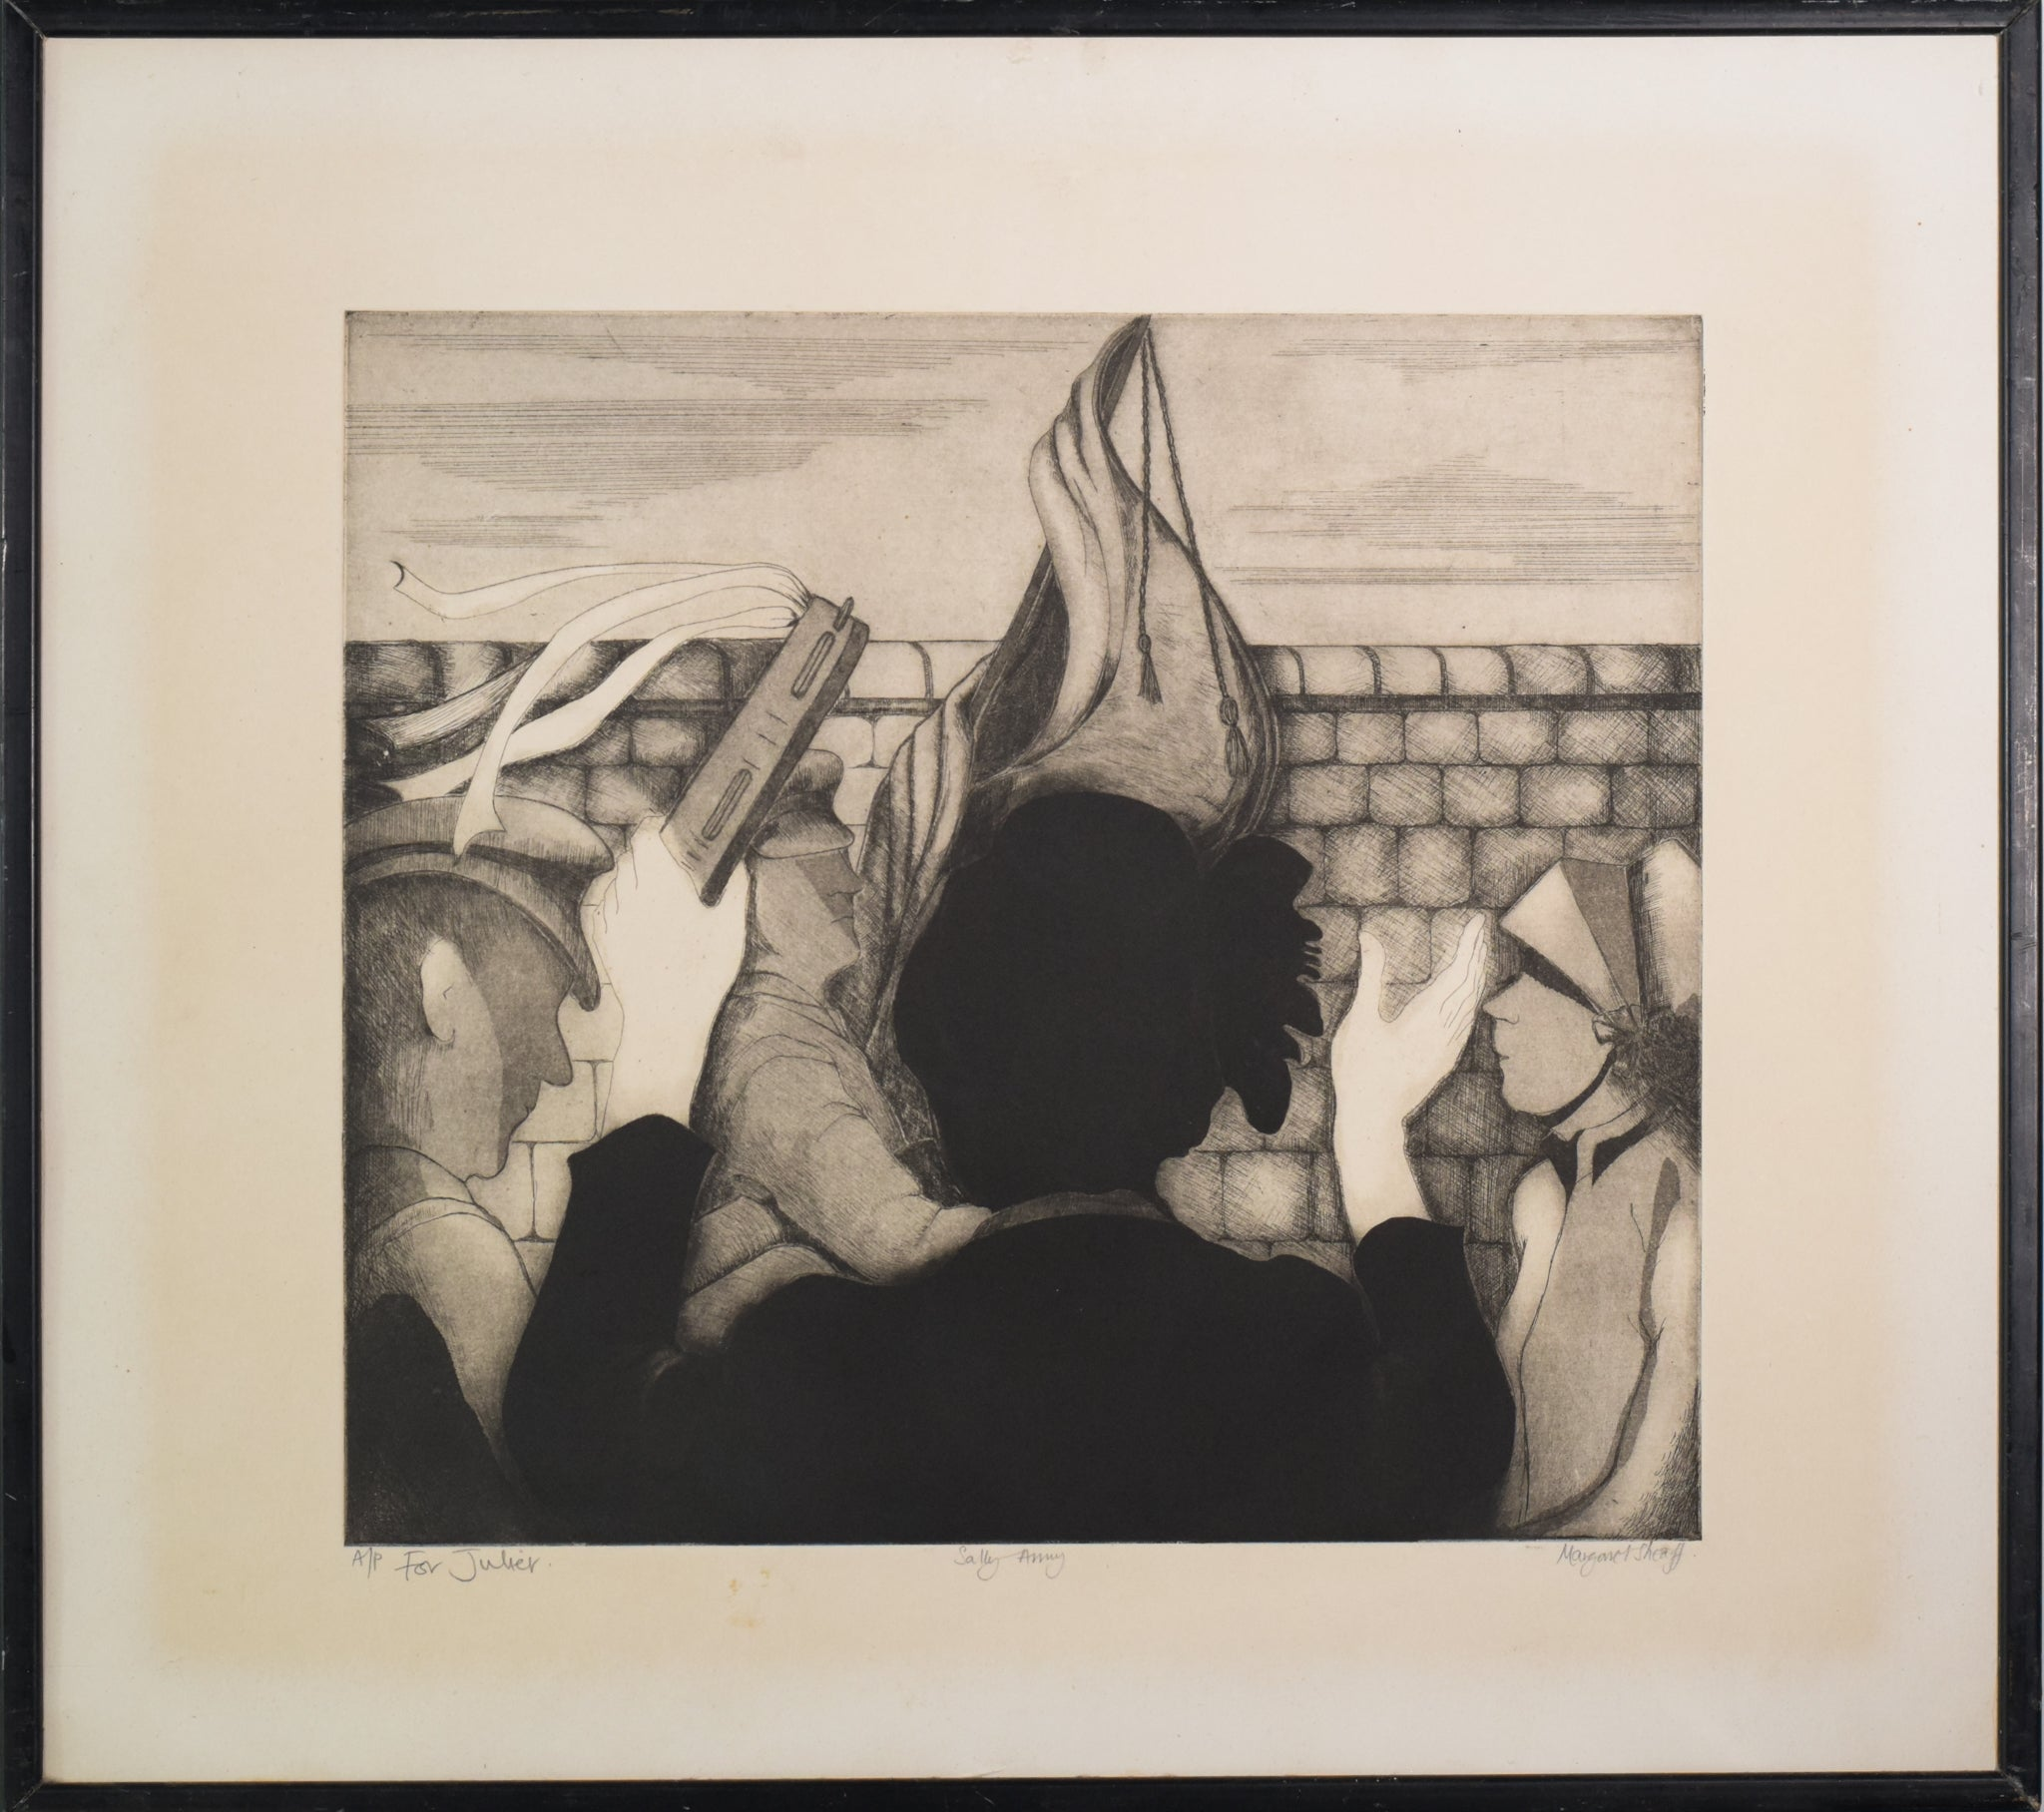 'Sally Army' etching by Margaret Sheaff_Framed